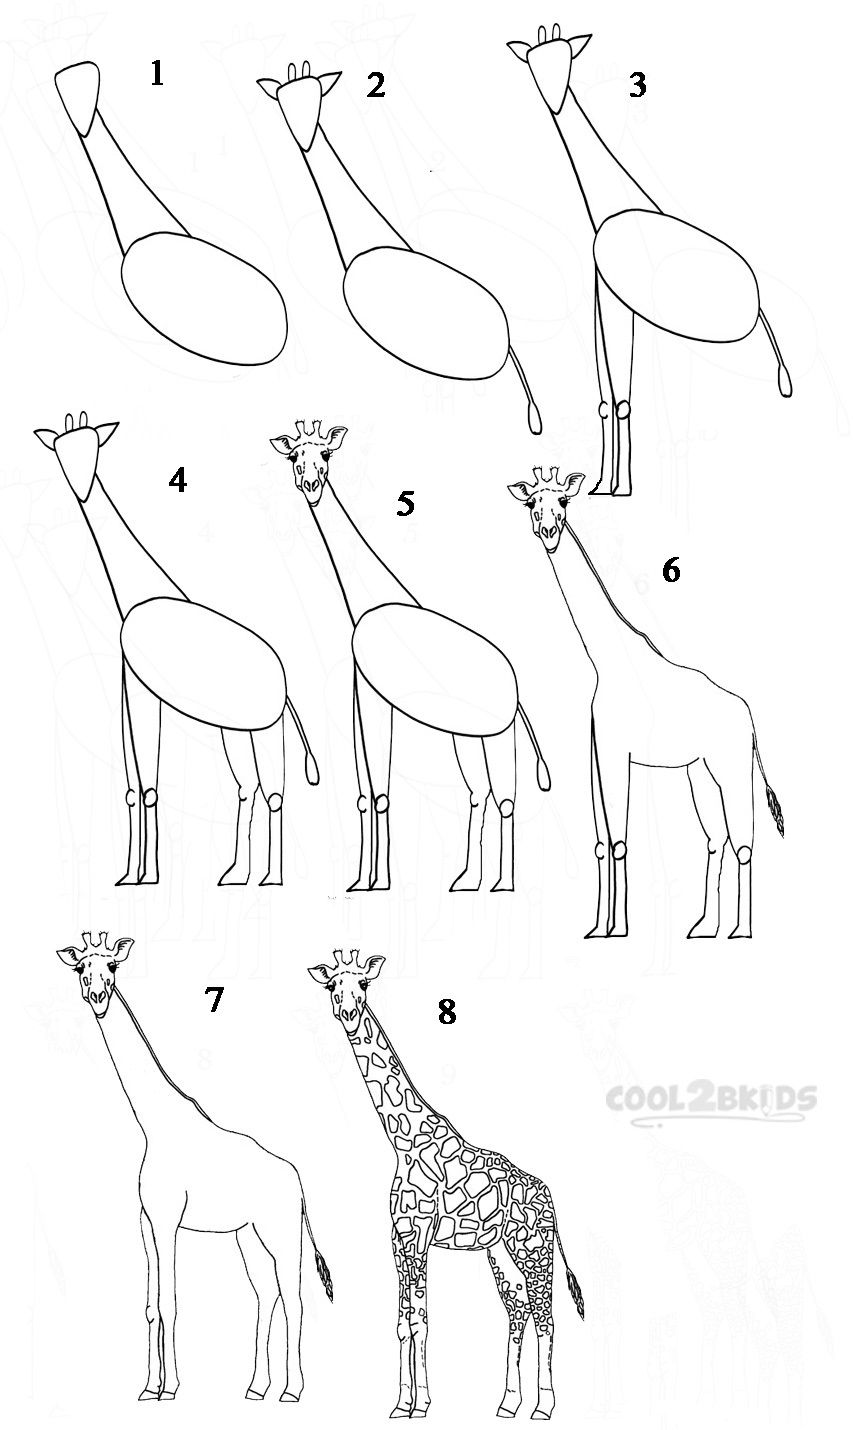 In this drawing lesson we'll show you how to draw a